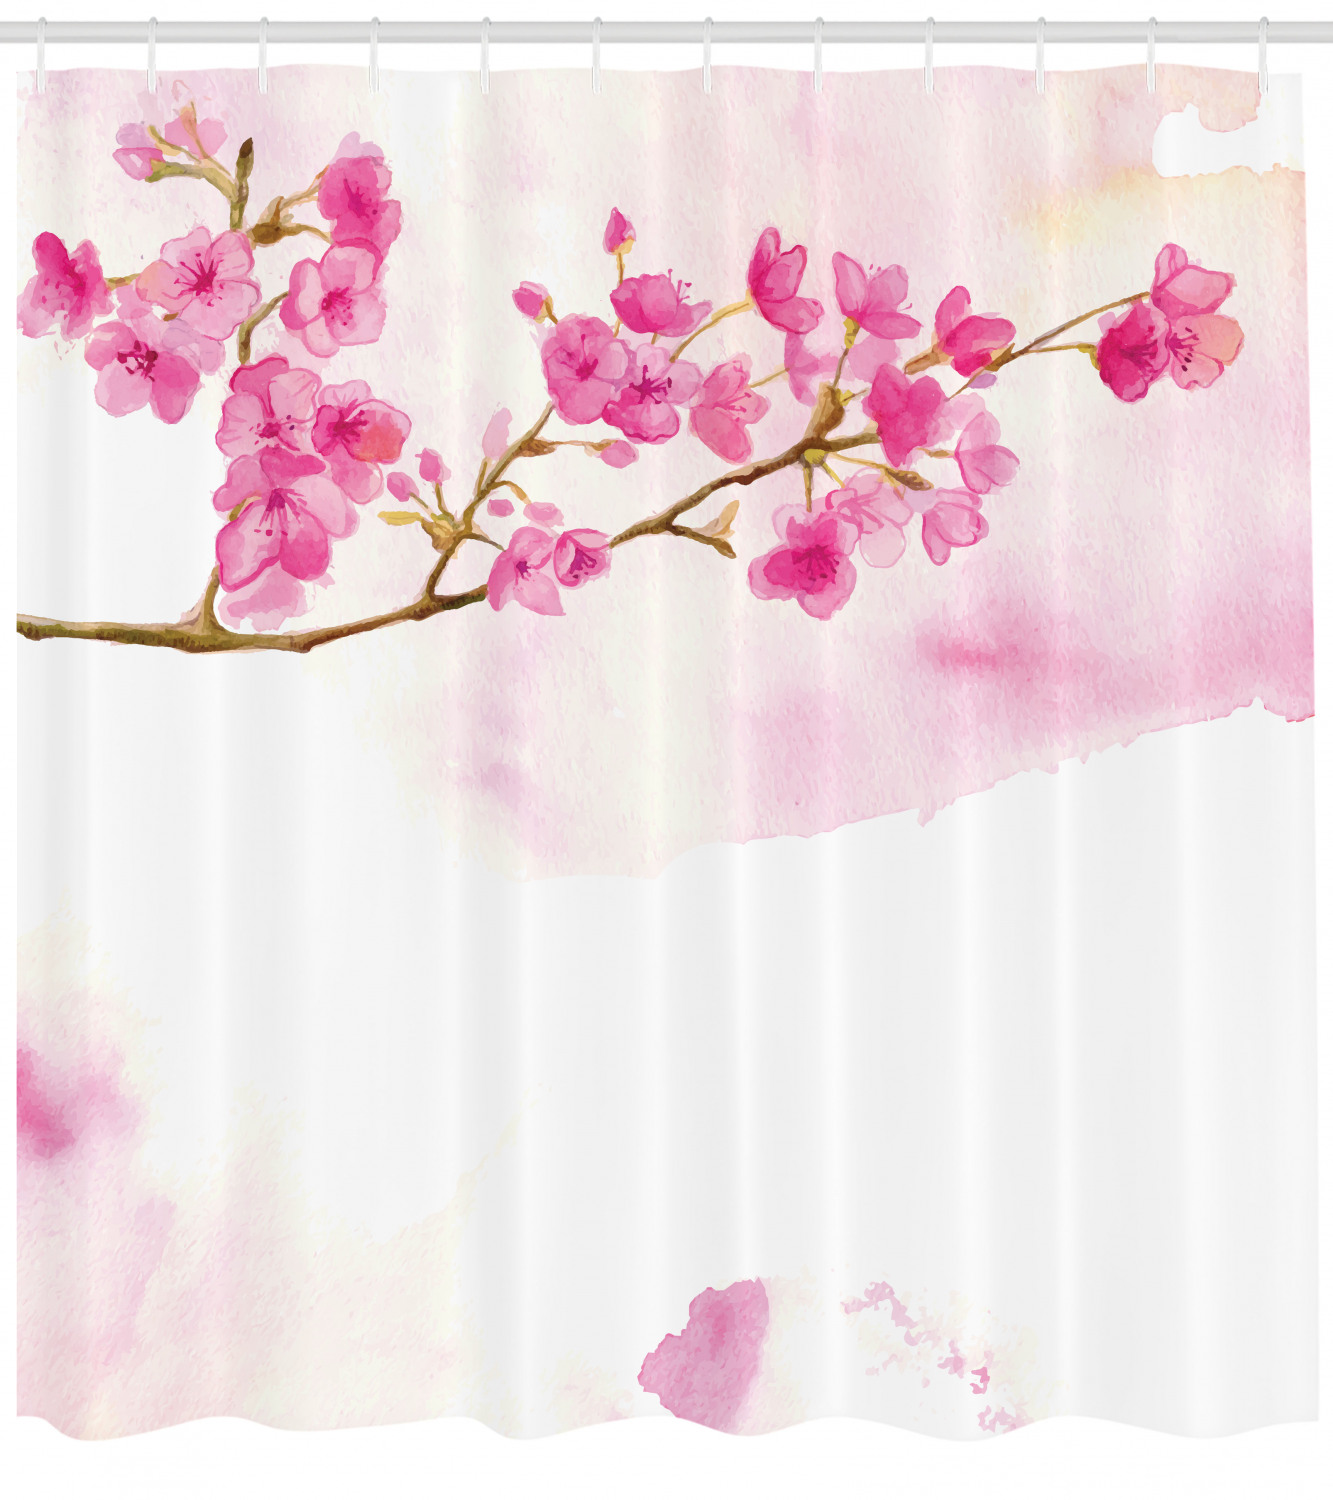 Cherry Blossom Shower Curtain Watercolor Art Of Japanese Peaceful Blossom Gardens Fabric Bathroom Set With Hooks 69w X 75l Inches Long Hot Pink